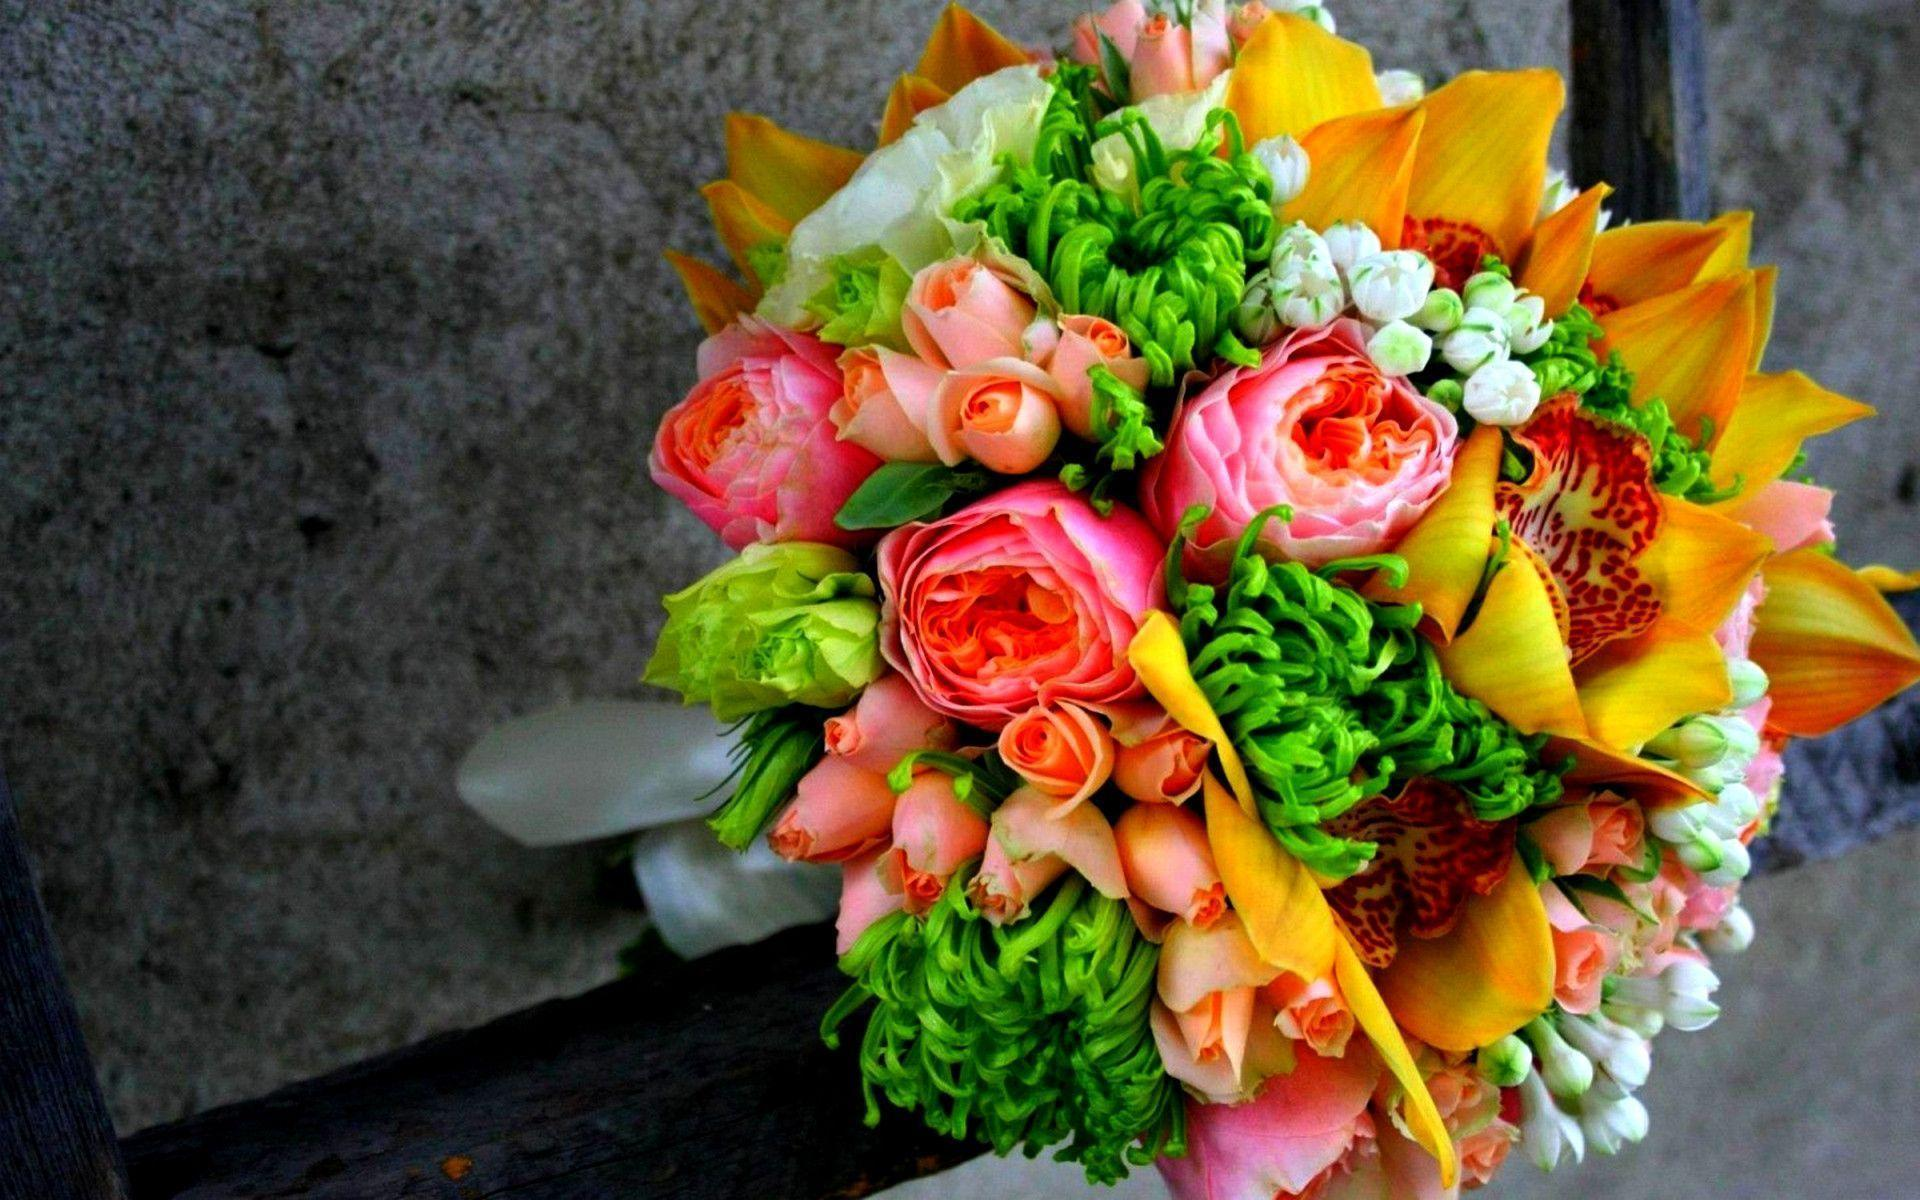 Flower bouquet wallpapers wallpaper cave - Bunch of roses hd images ...